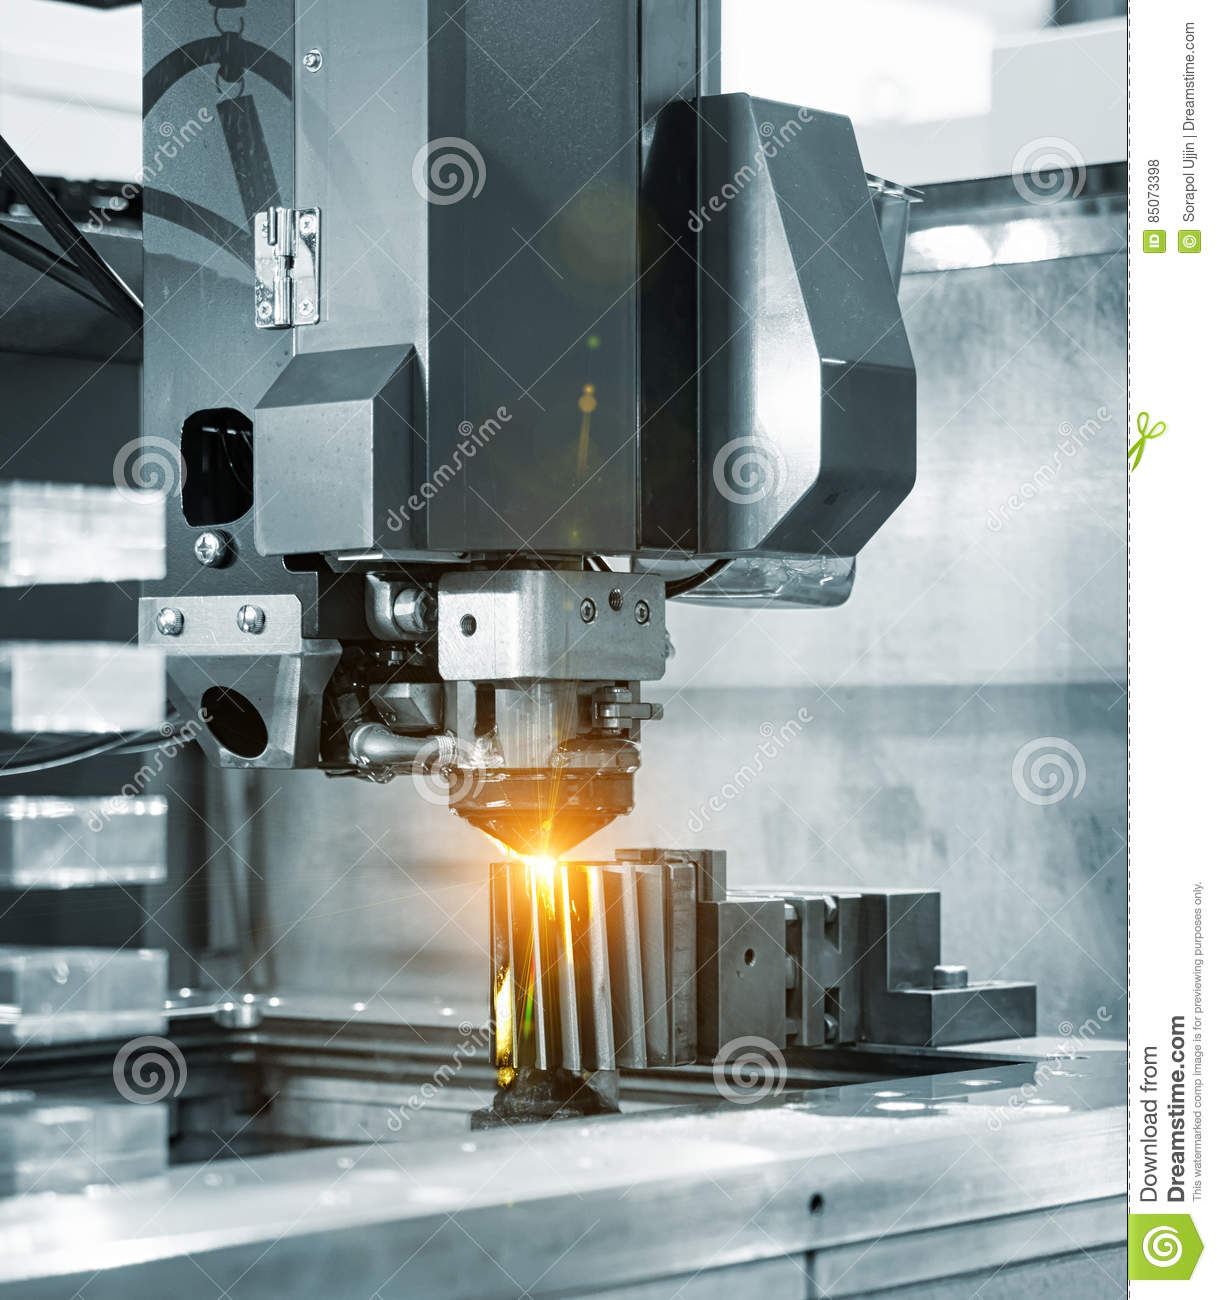 CNC Wire Cut Machine Cutting Mold Parts Stock Photo - Image of heat ...